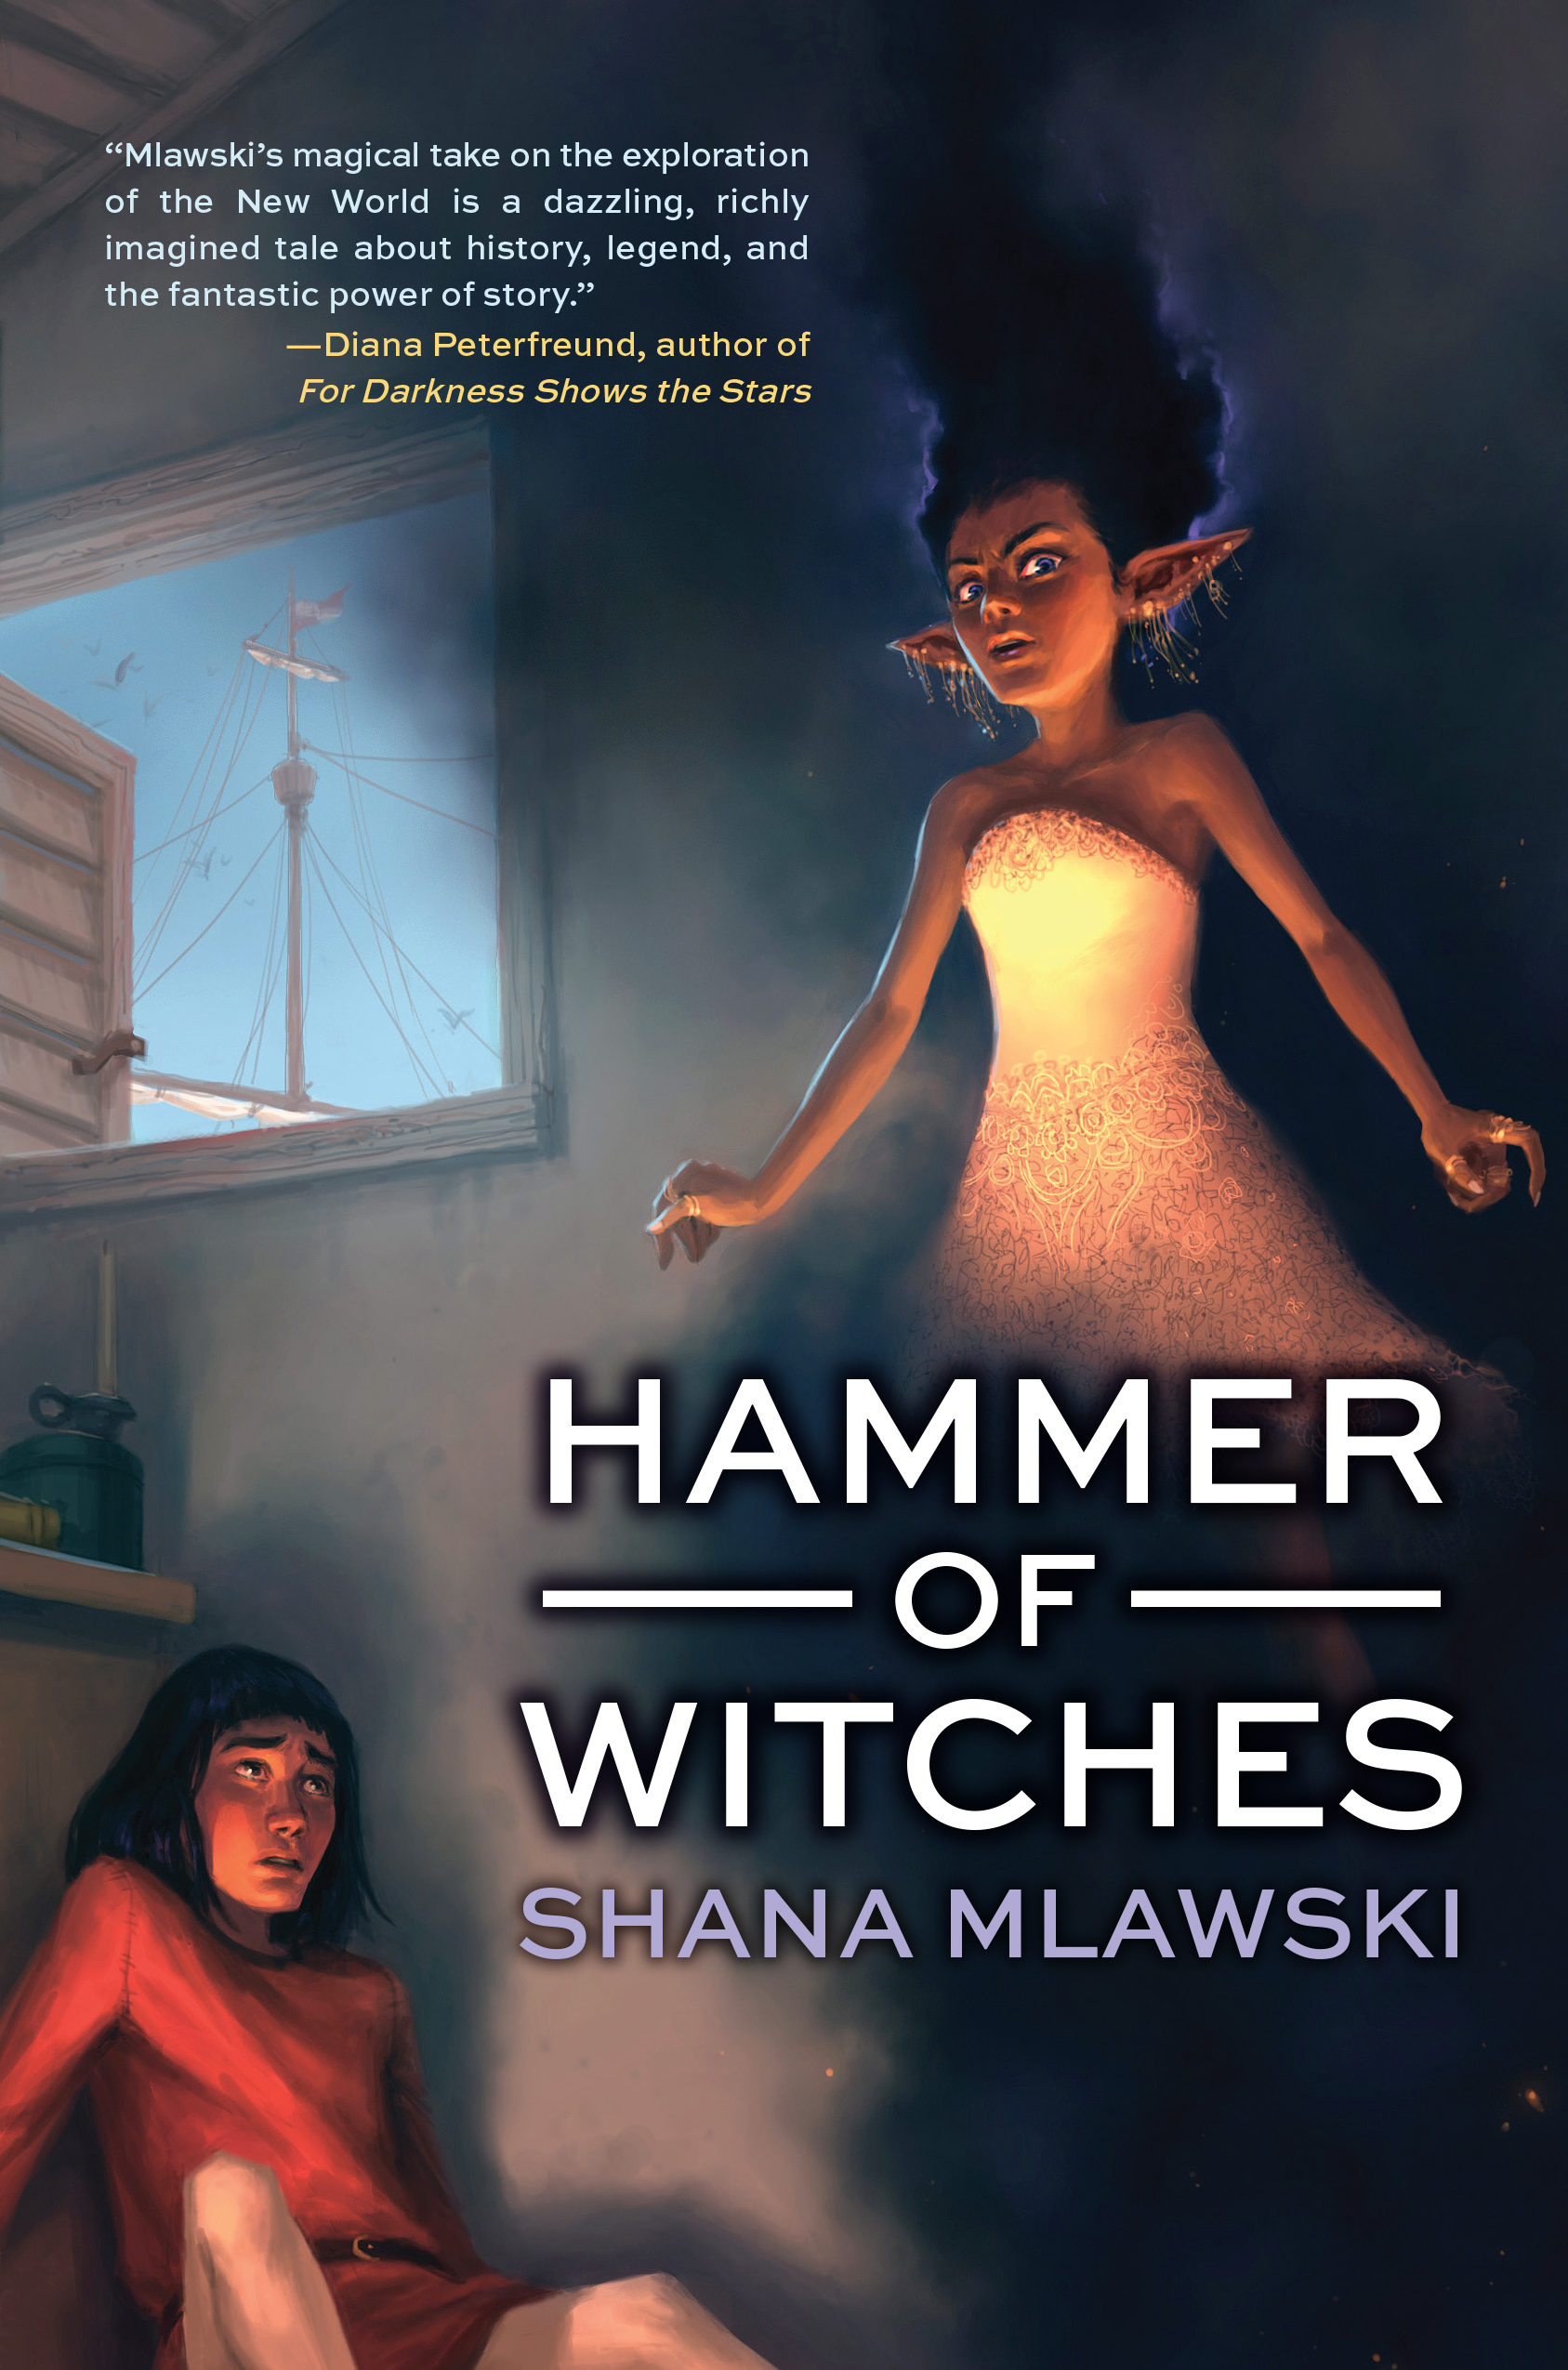 Hammer of Witches final cover